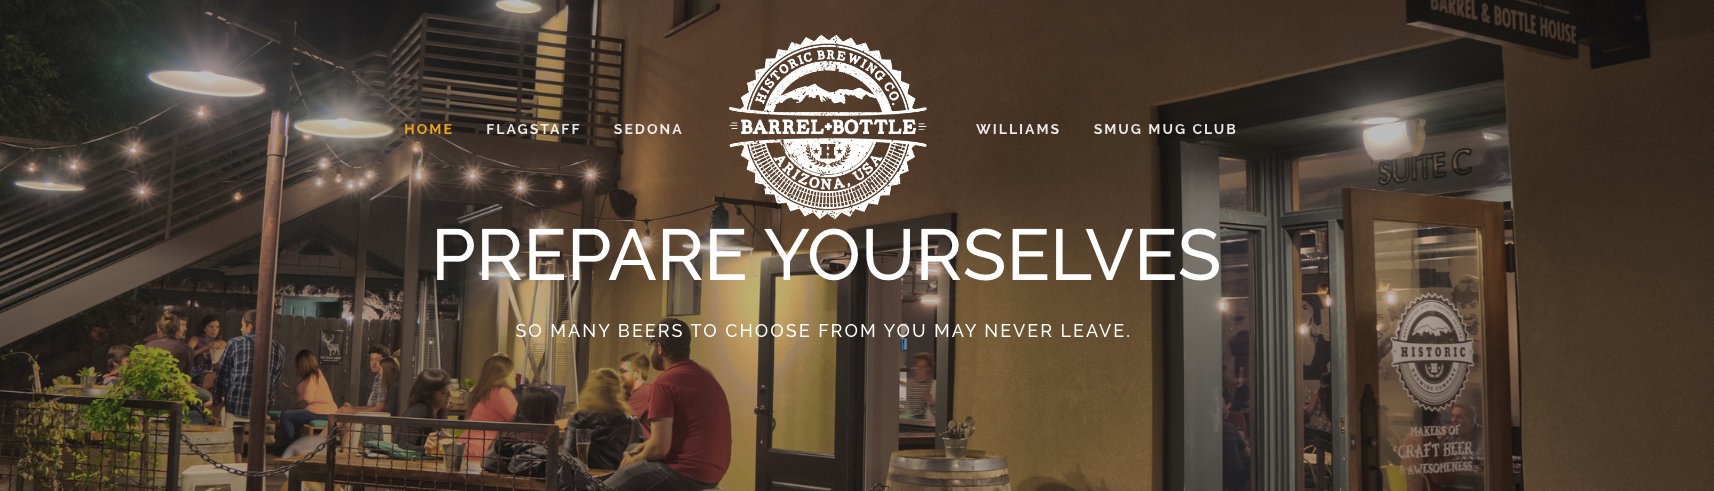 A full service project: Historic Brewing Co.'s downtown location, Barrel + Bottle,  in early 2015